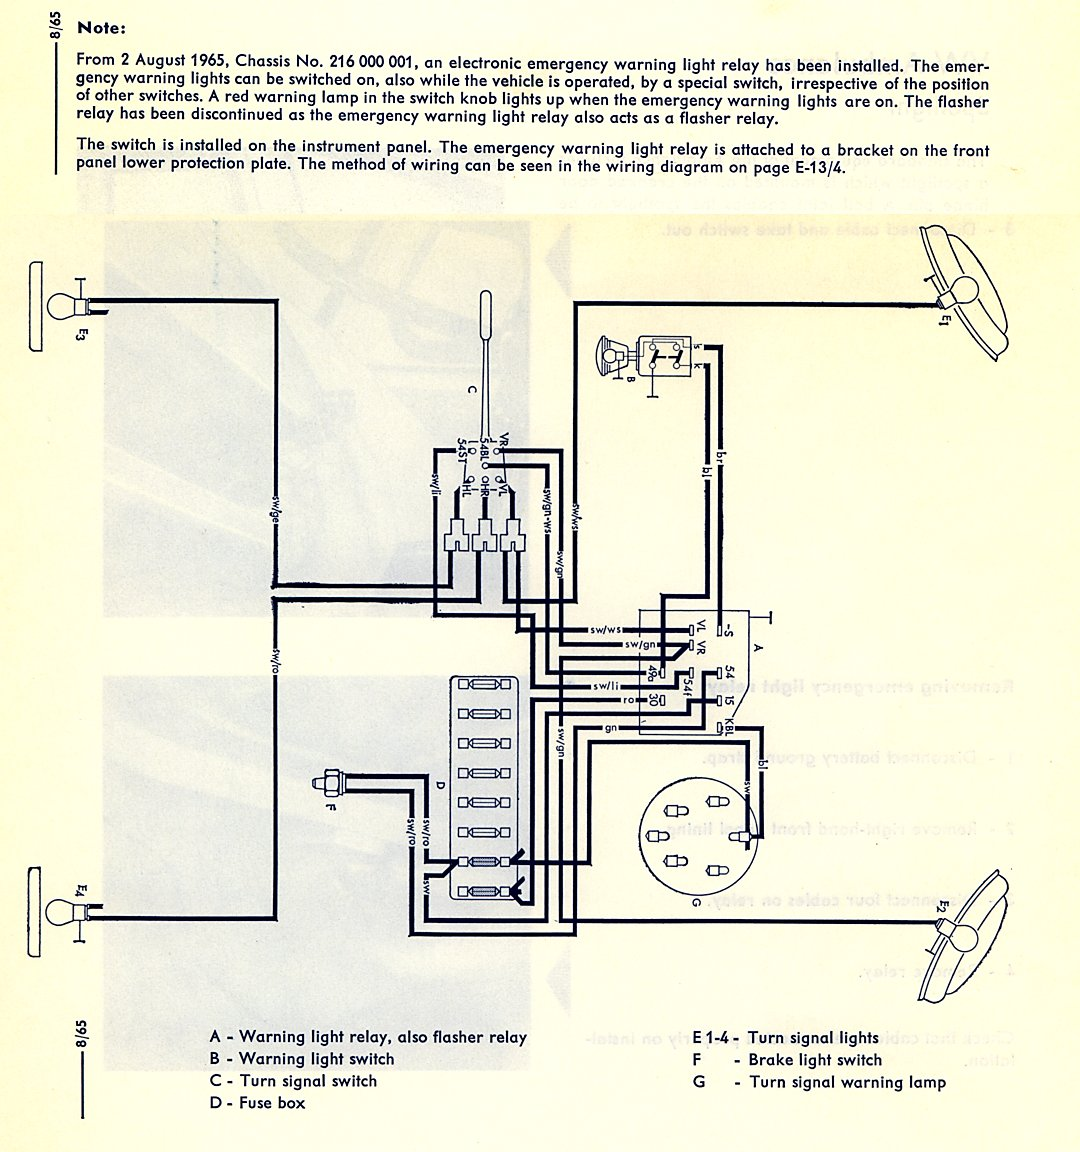 Type 2 Wiring Diagrams Into How The Diagram In Link Maps To A Circuit Like This